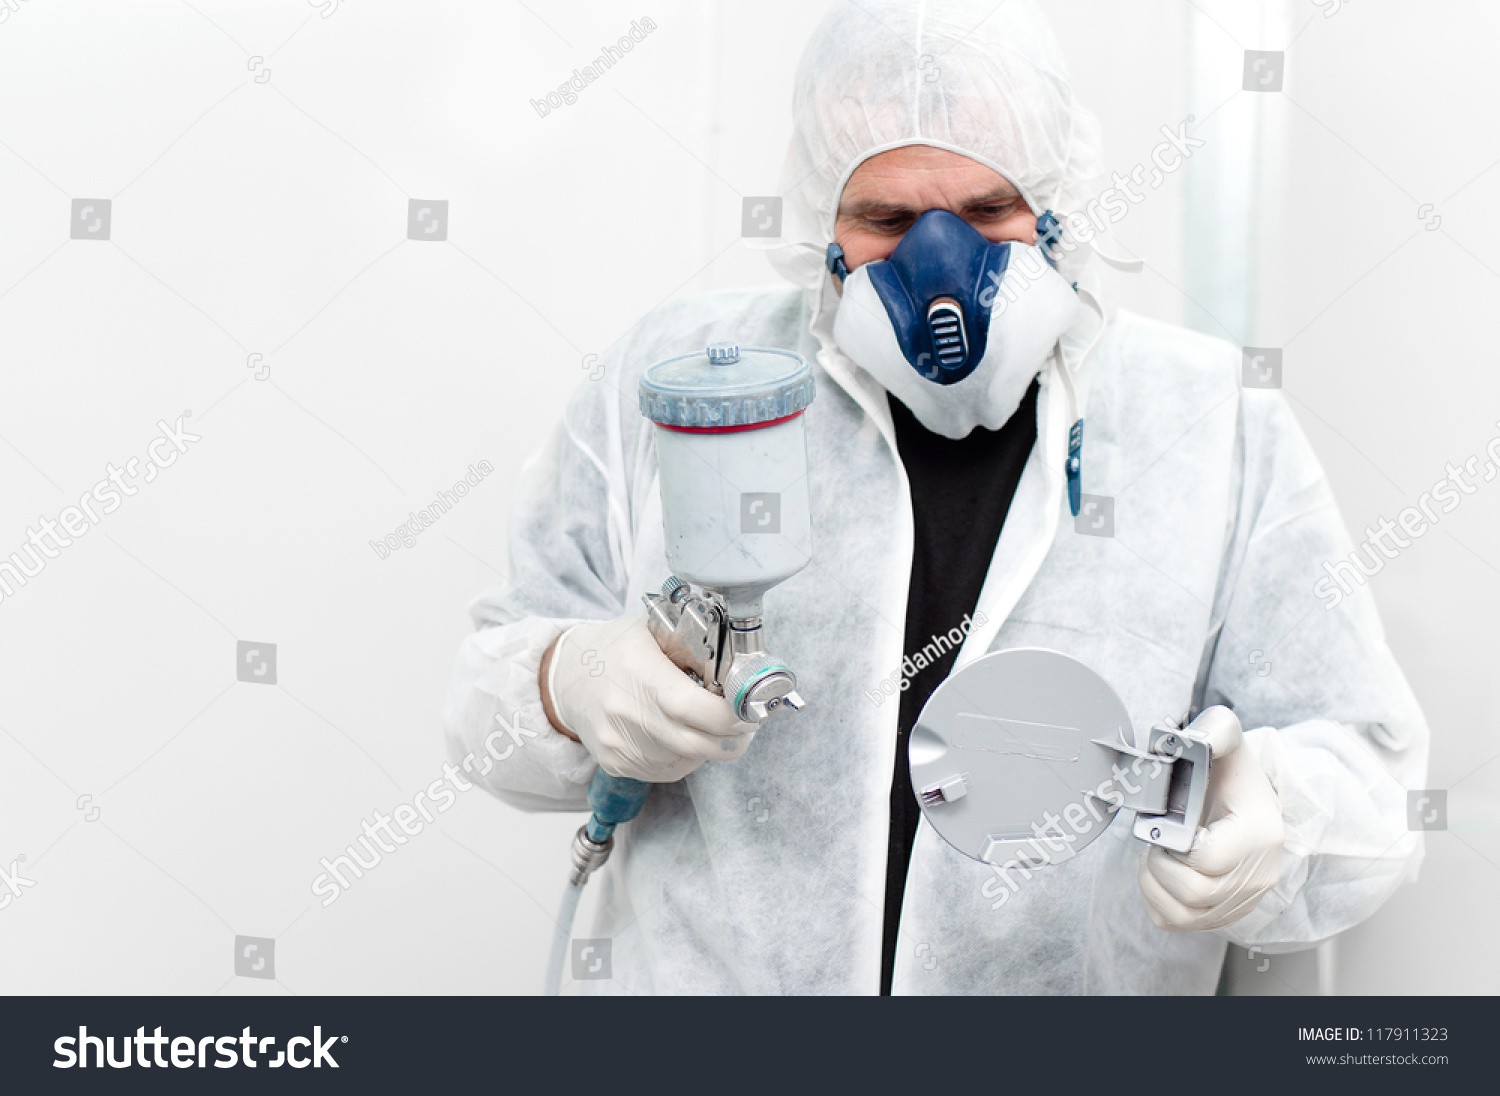 Auto Worker Painting Car Body Component Stock Photo 117911323 ...